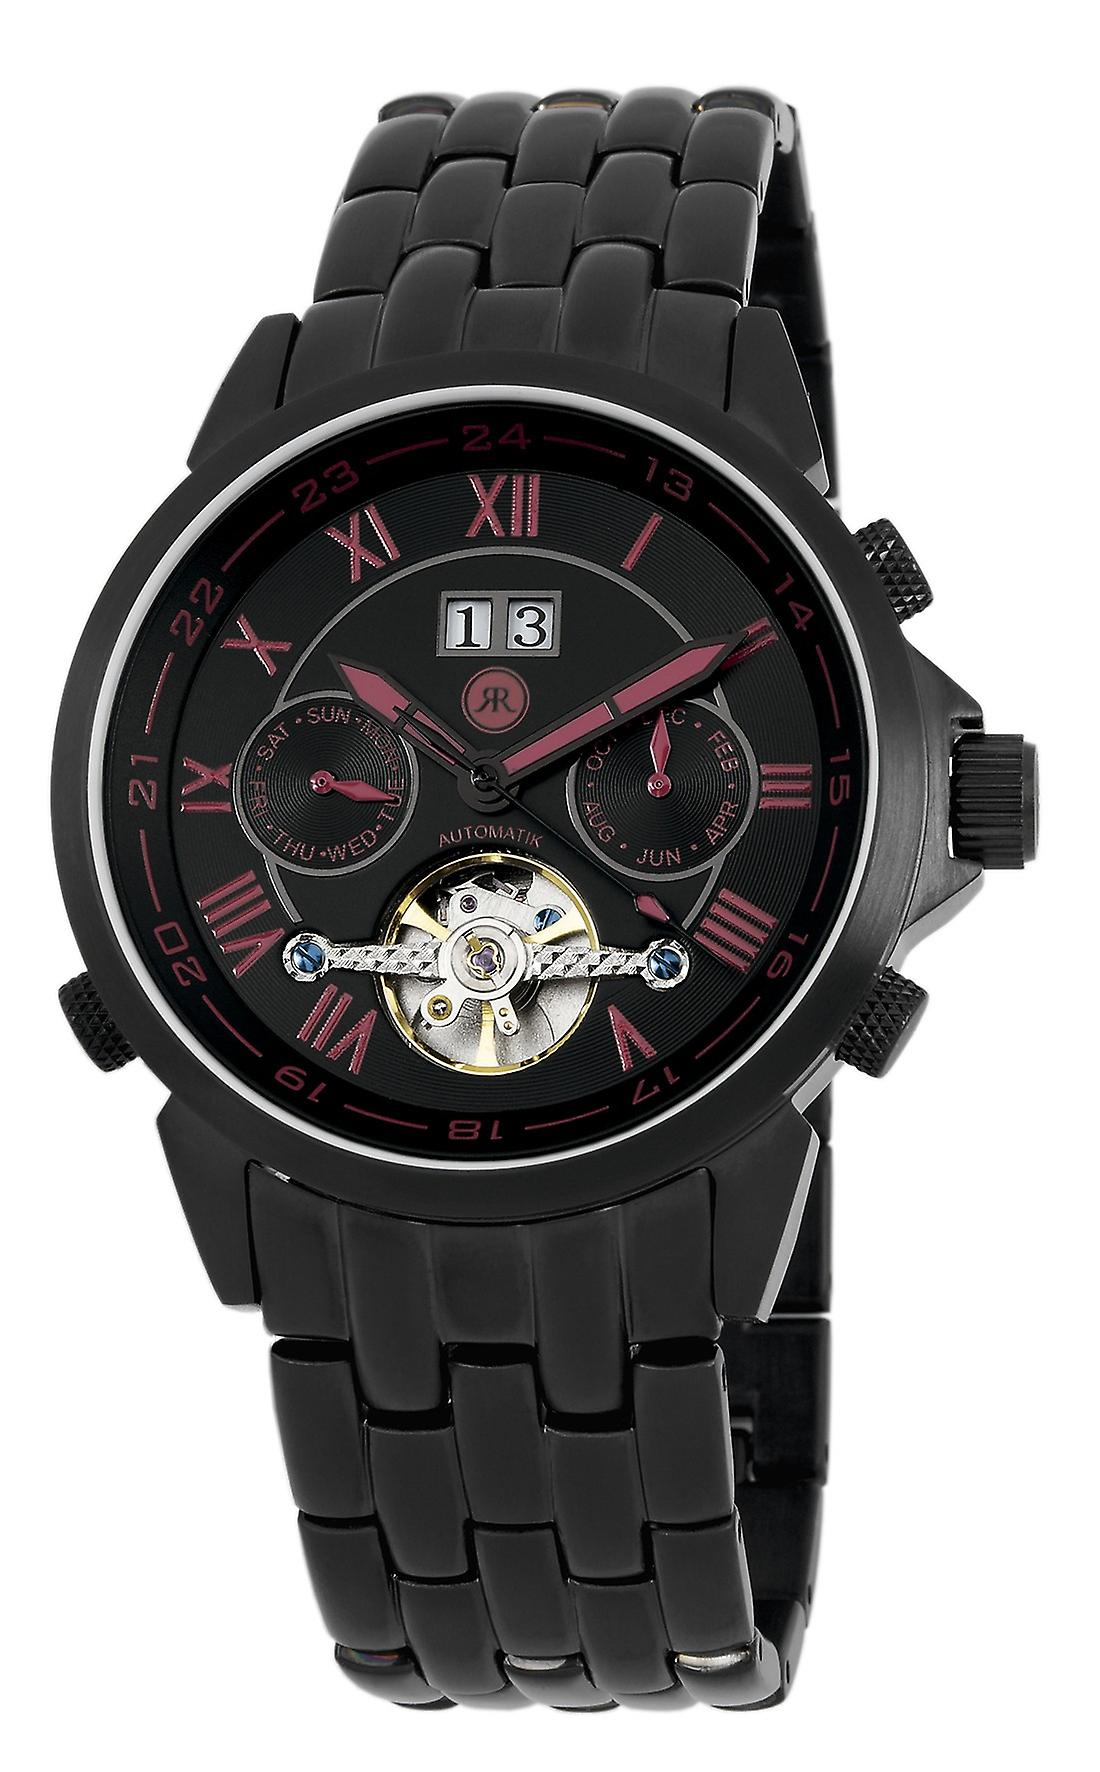 Reichenbach gents automatic watch Egge, RB301-622A